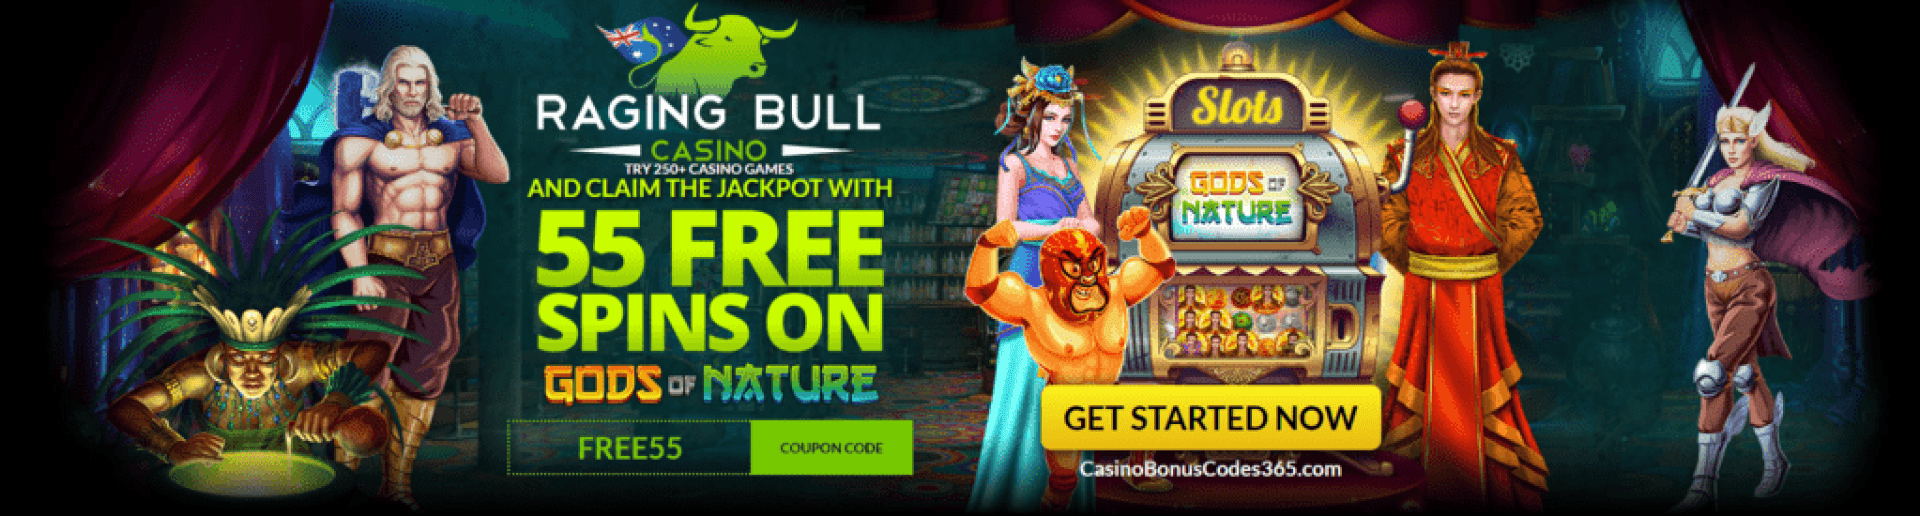 Raging Bull Casino AUD 55 FREE Spins on Gods of Nature RTG